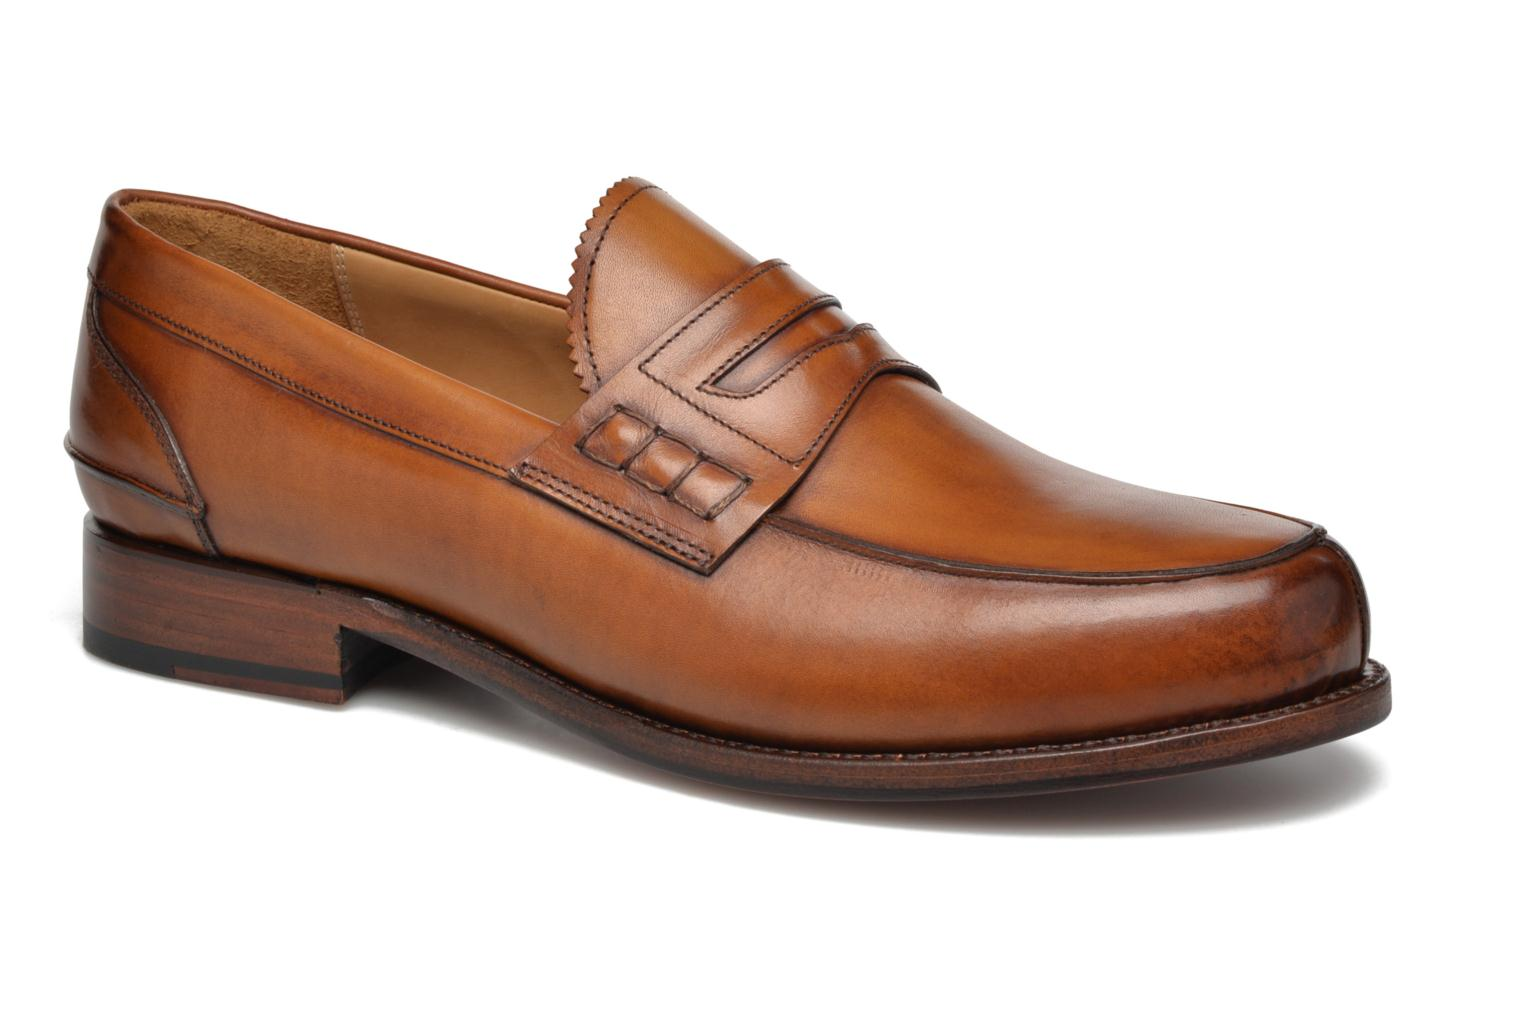 Marques Chaussure luxe homme Marvin&Co Luxe homme Walsall - Cousu Blake Elba noce